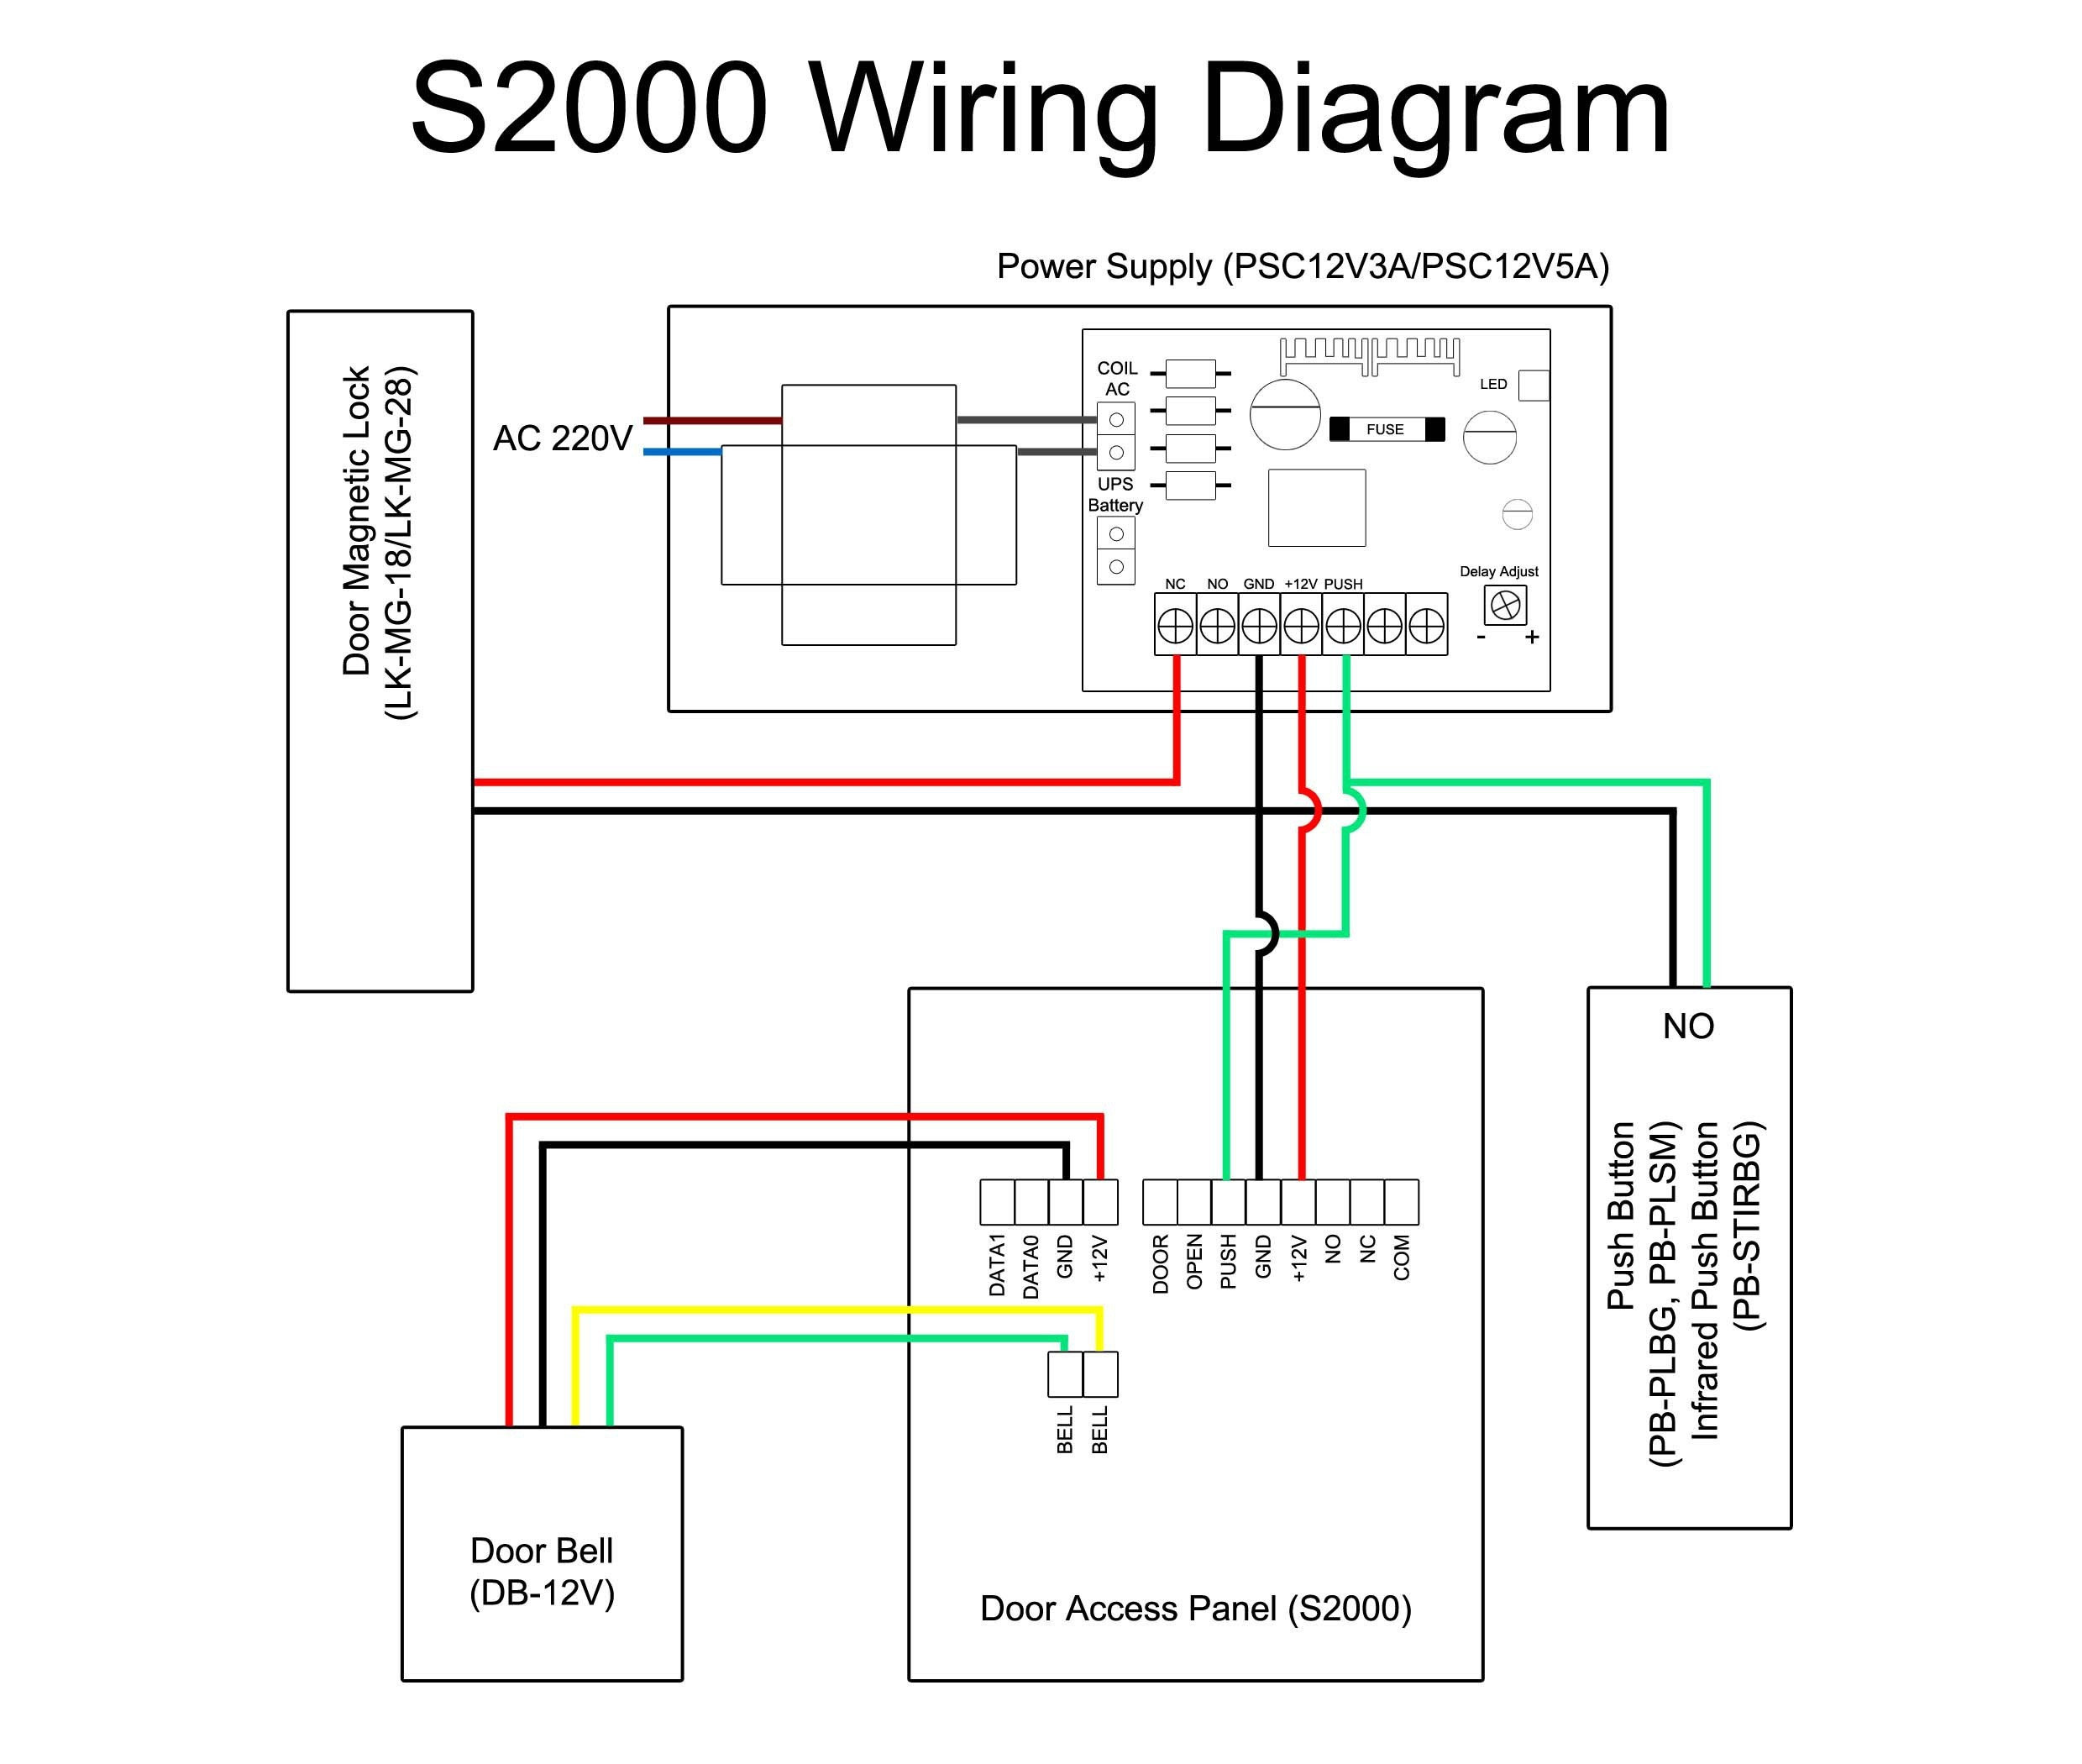 samsung wiring diagrams repair manual Samsung Dryer Wiring Diagram